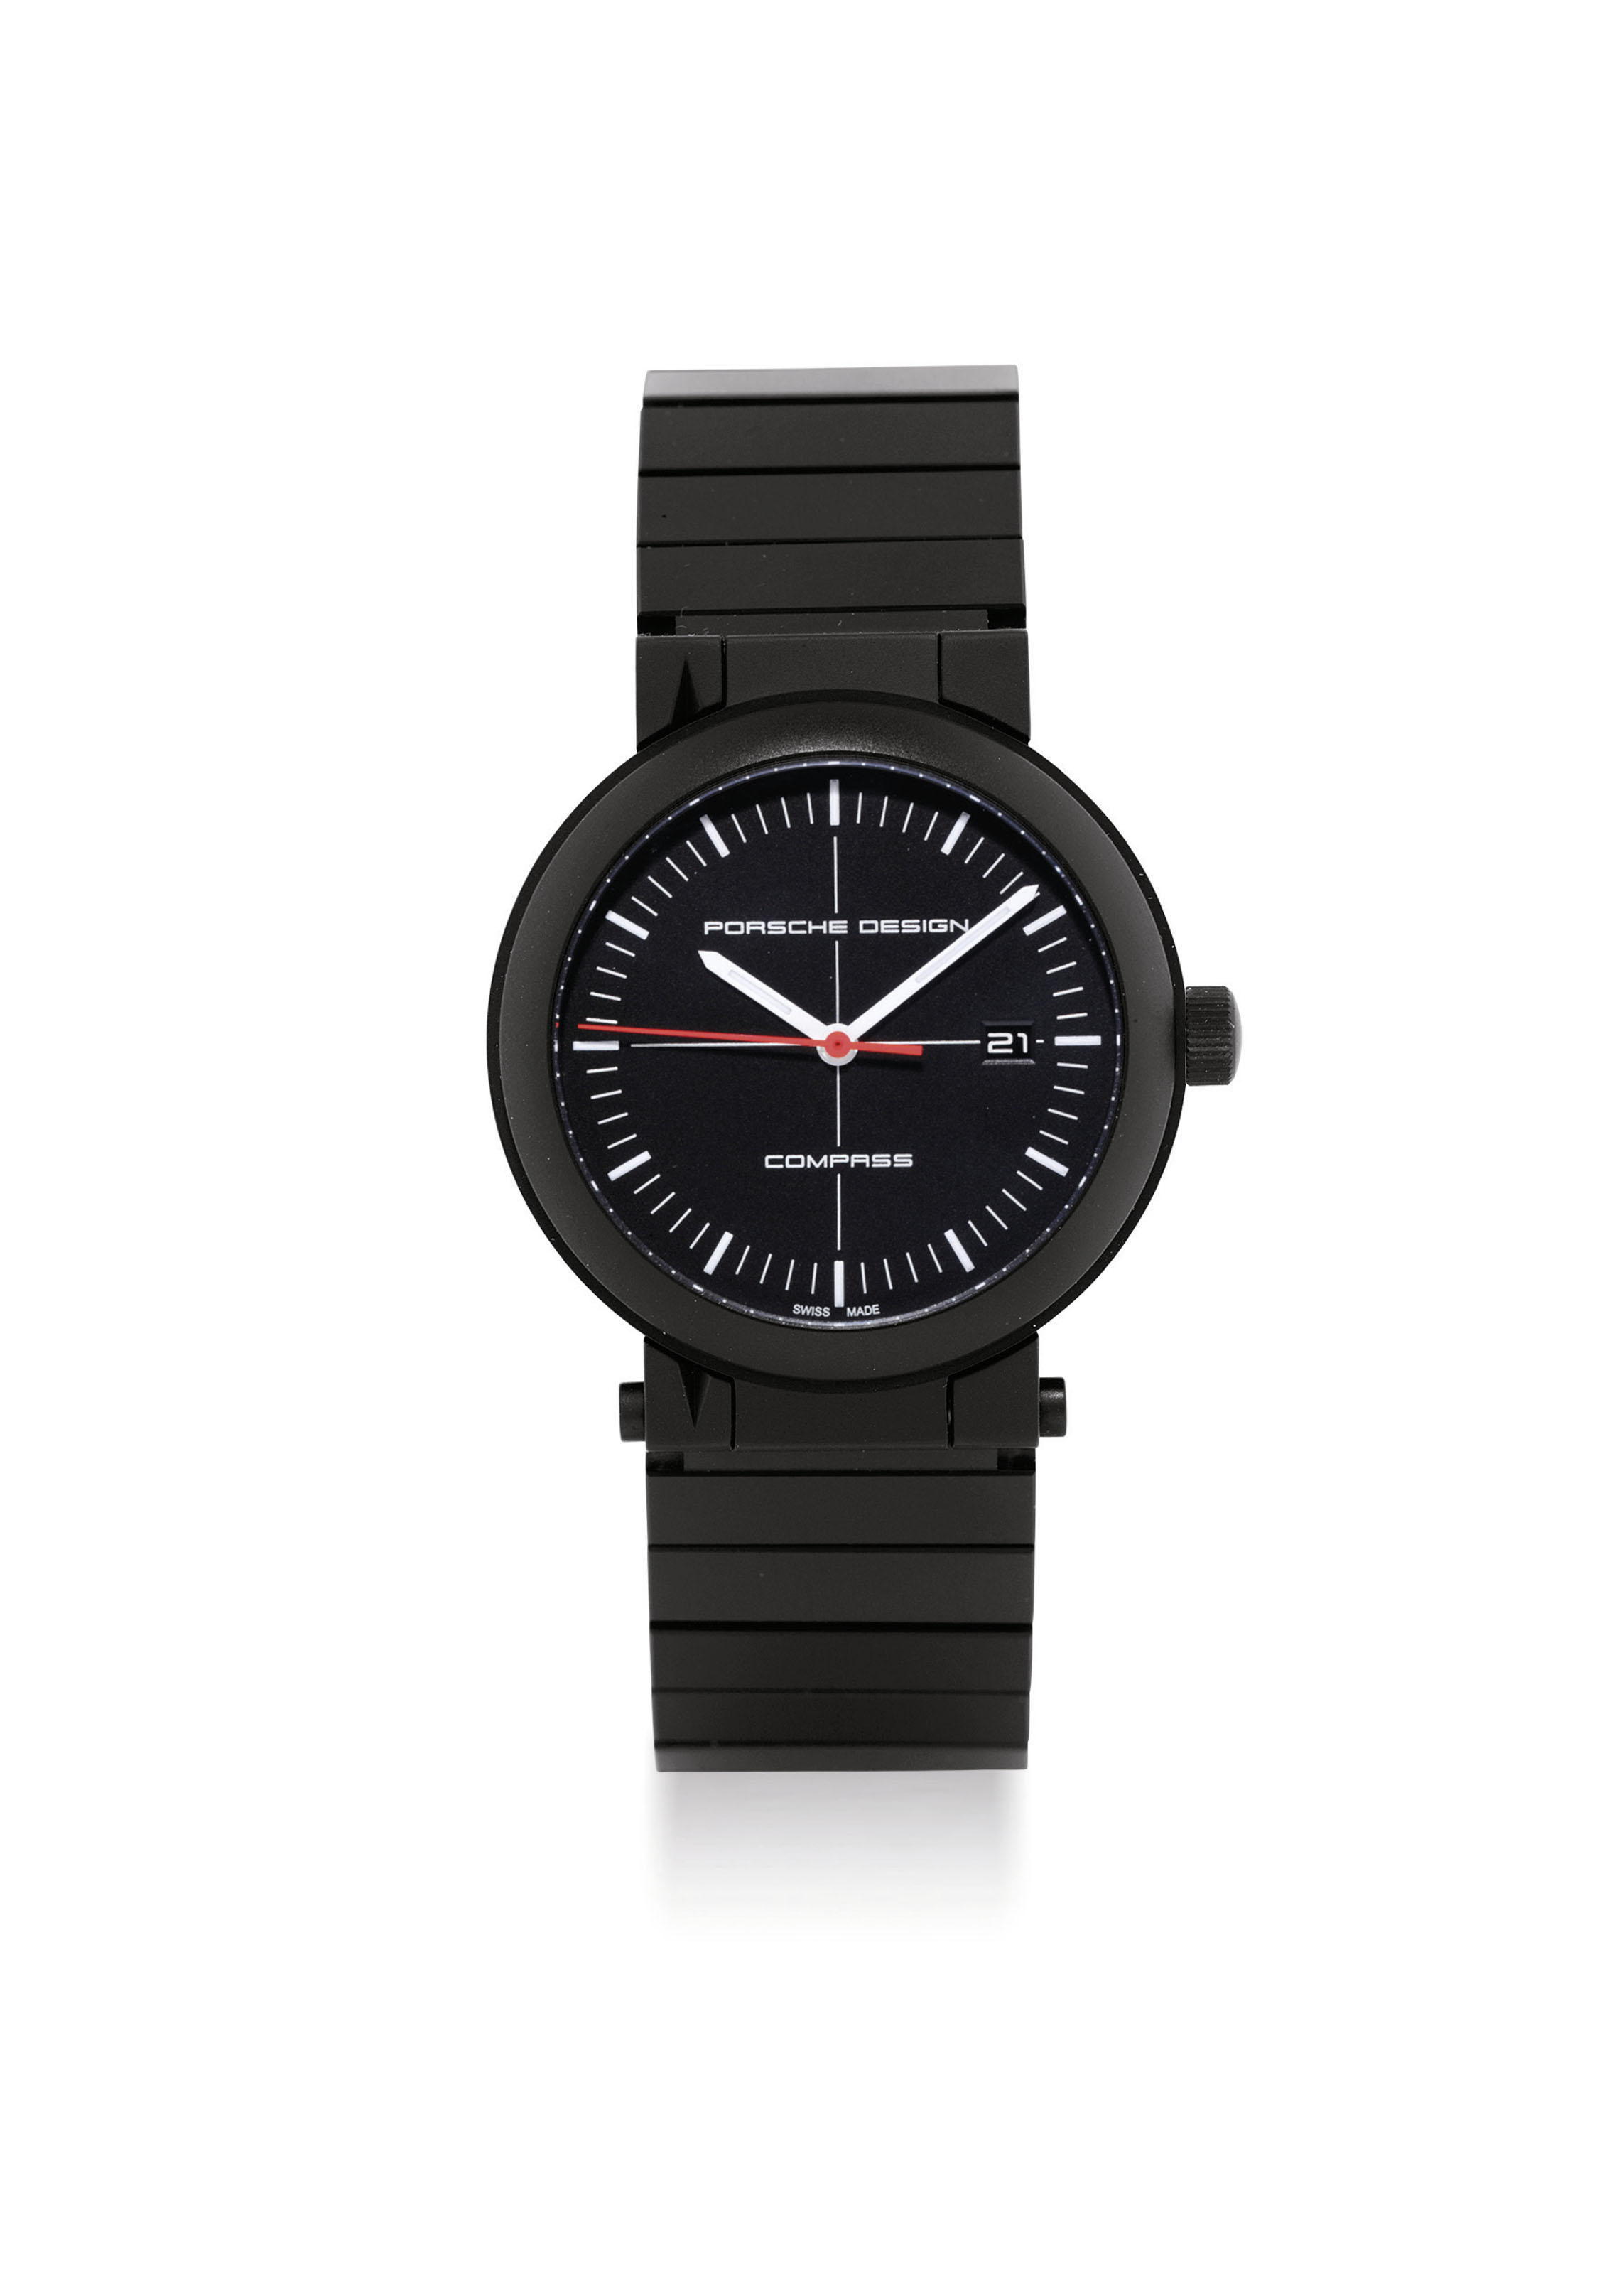 PORSCHE DESIGN. A PVD-COATED TITANIUM LIMITED EDITION AUTOMATIC WRISTWATCH WITH SWEEP CENTRE SECONDS, DATE AND COMPASS